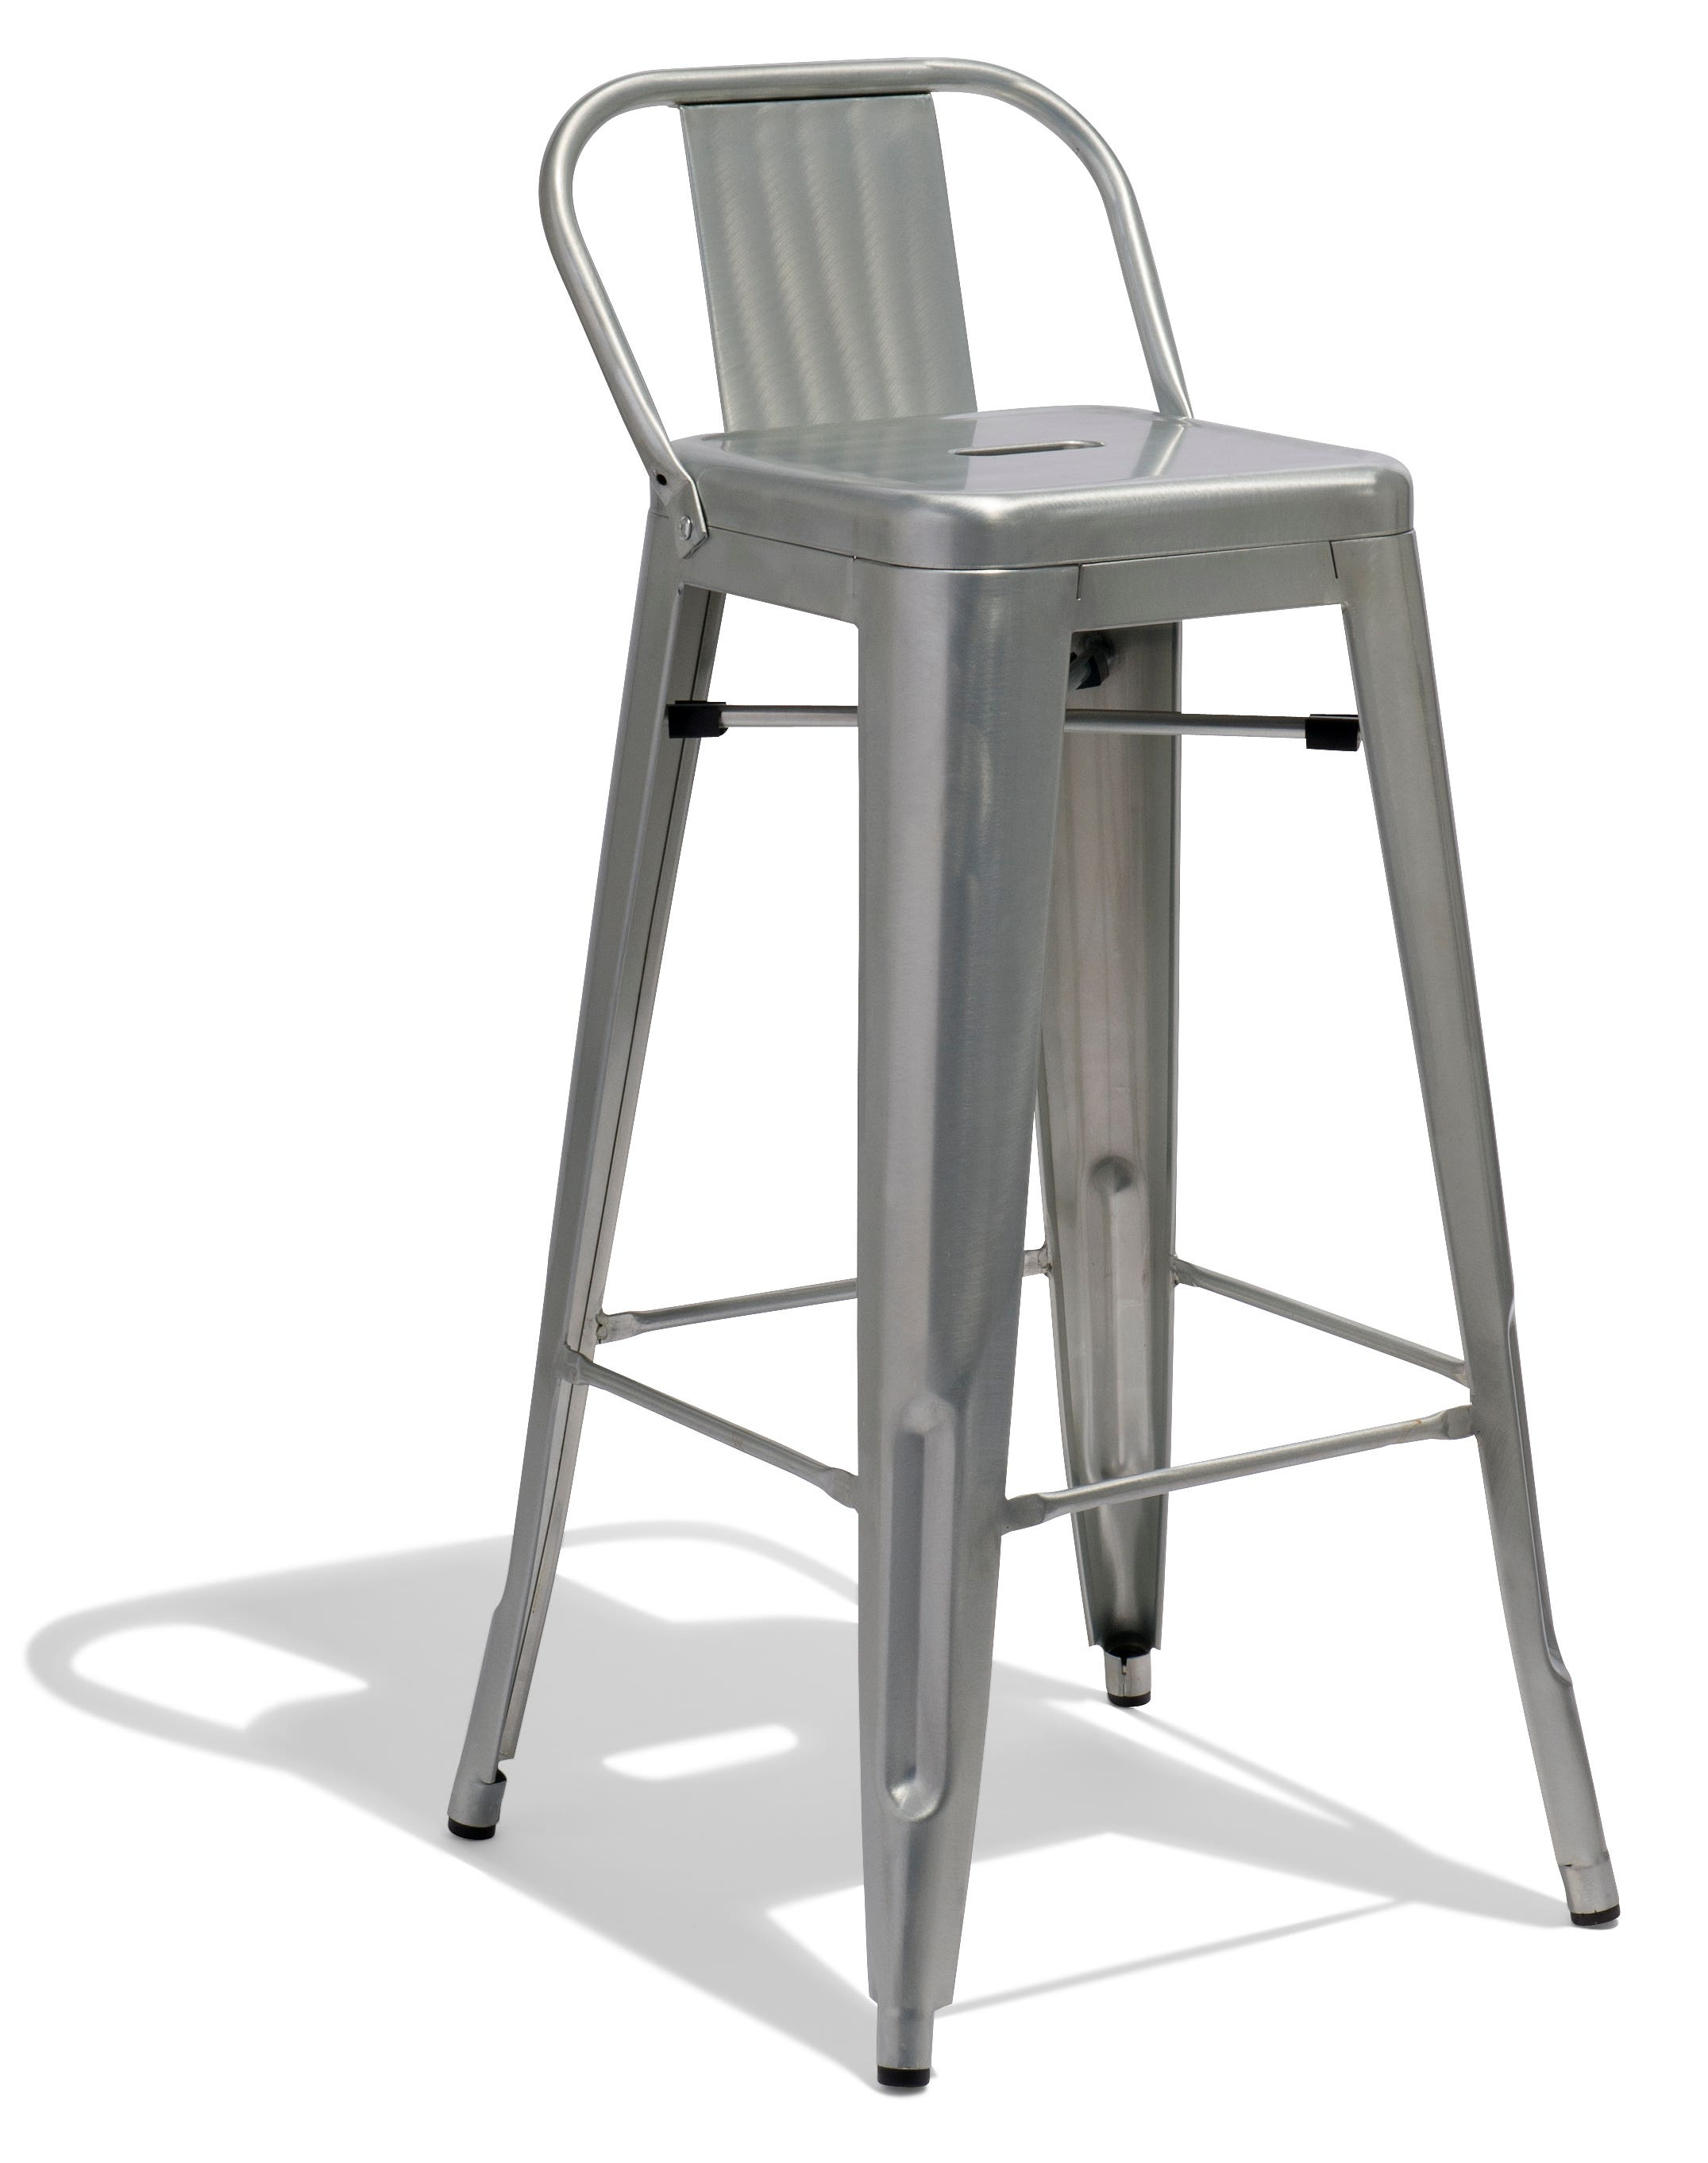 Fantastic Low Back Bar Stool Andrewgaddart Wooden Chair Designs For Living Room Andrewgaddartcom